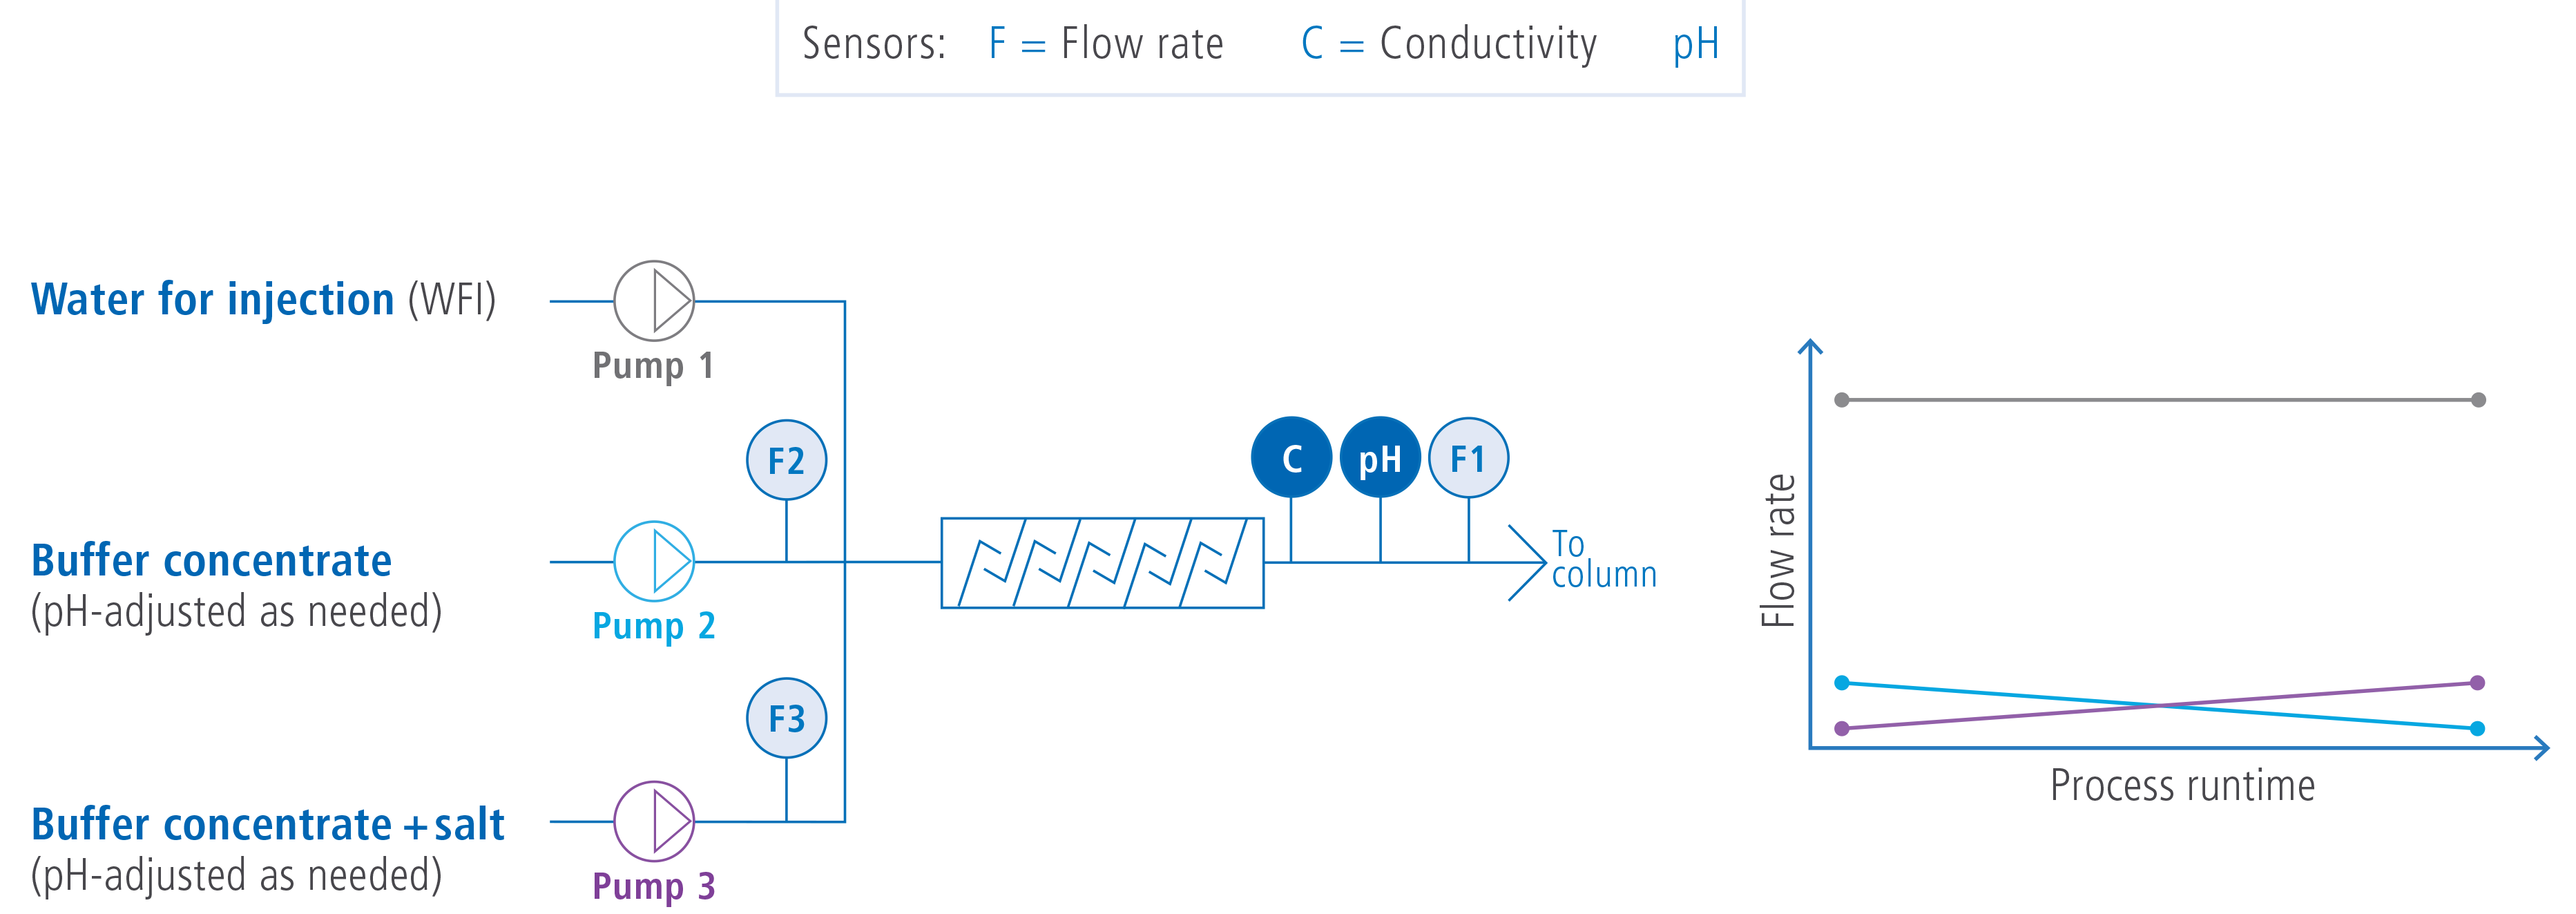 sensors flow rate and conductivity